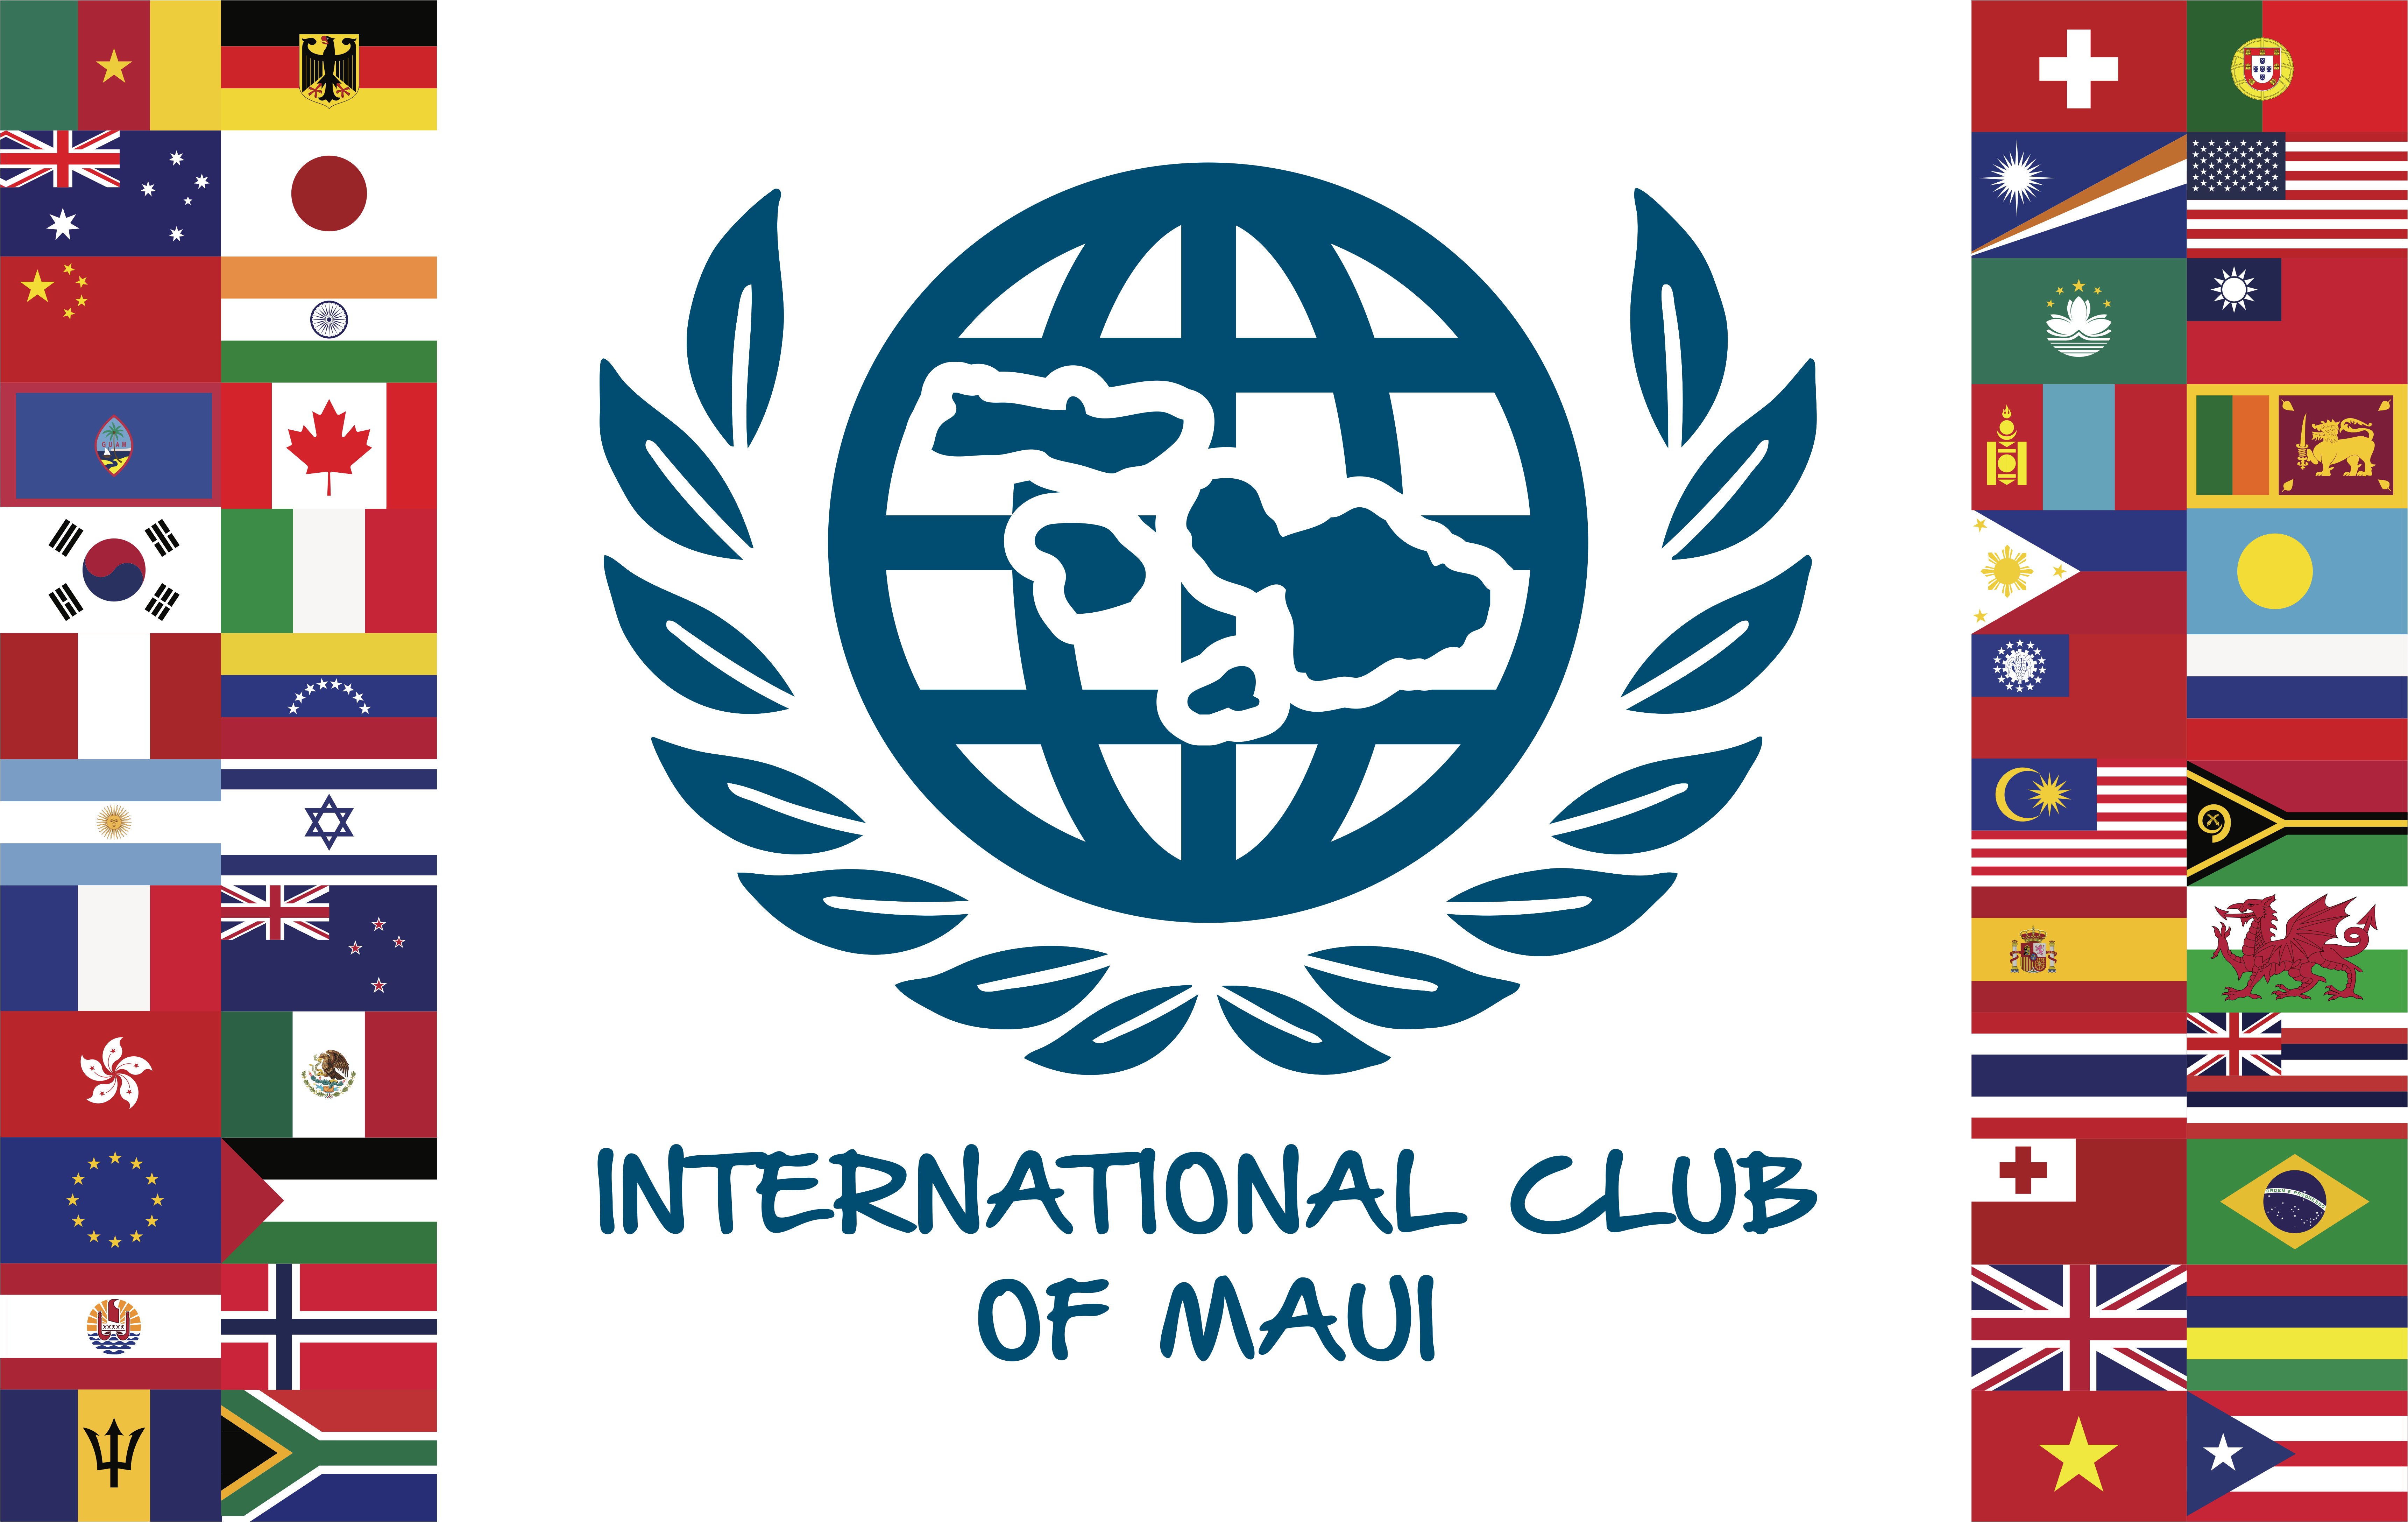 International Club maui Banner with Flags1